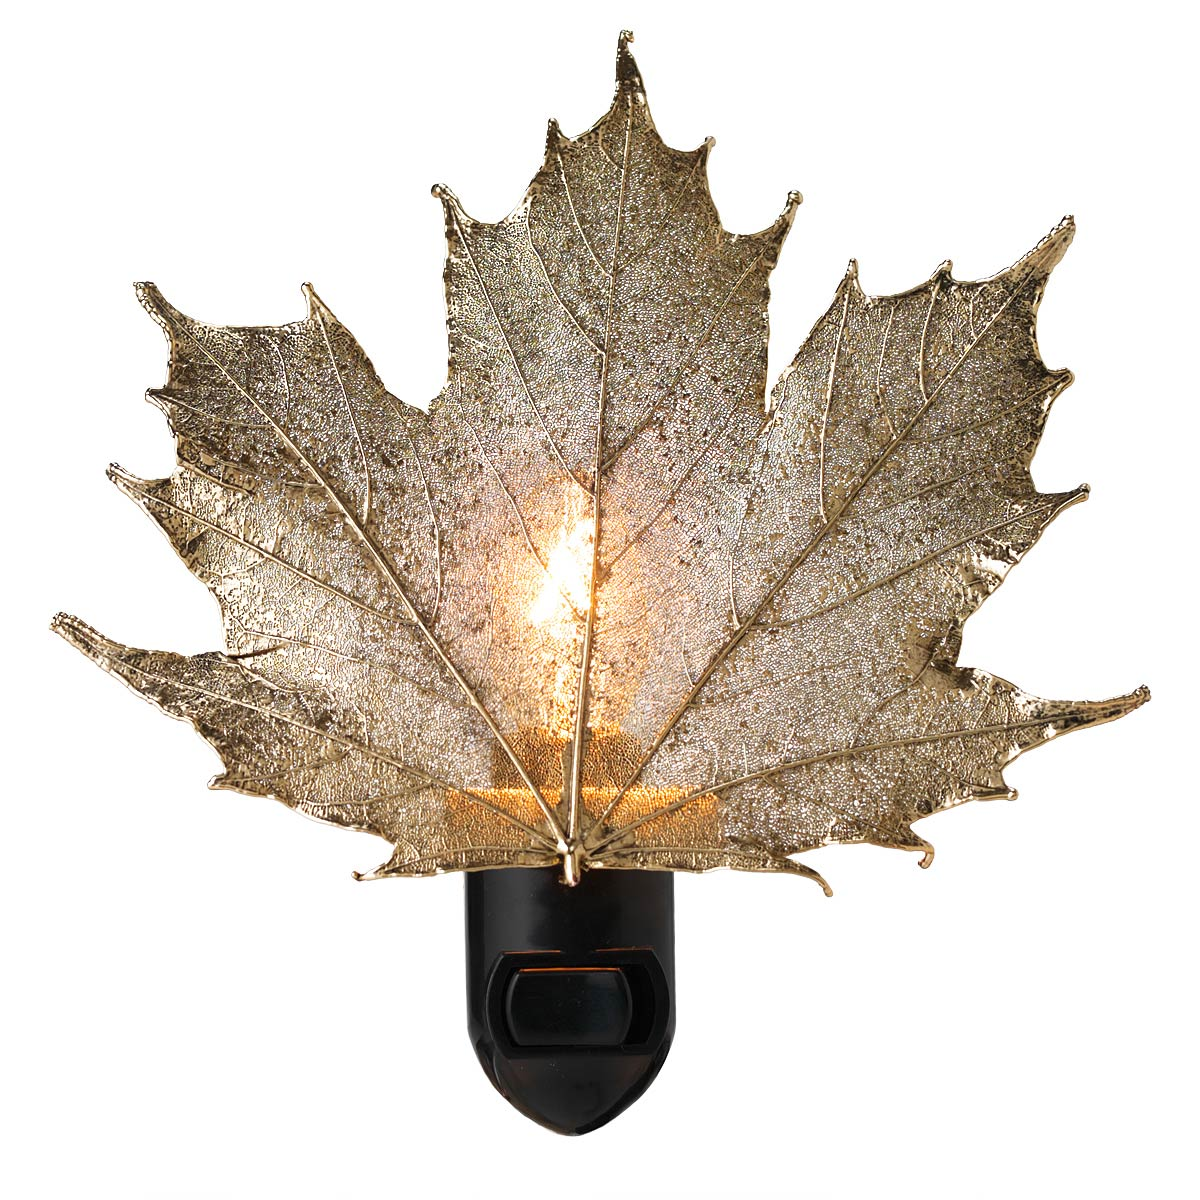 Real Sugar Maple Leaf Night Light 1 thumbnail  sc 1 st  UncommonGoods & Real Sugar Maple Leaf Night Light | Night Light of Leaves ... azcodes.com